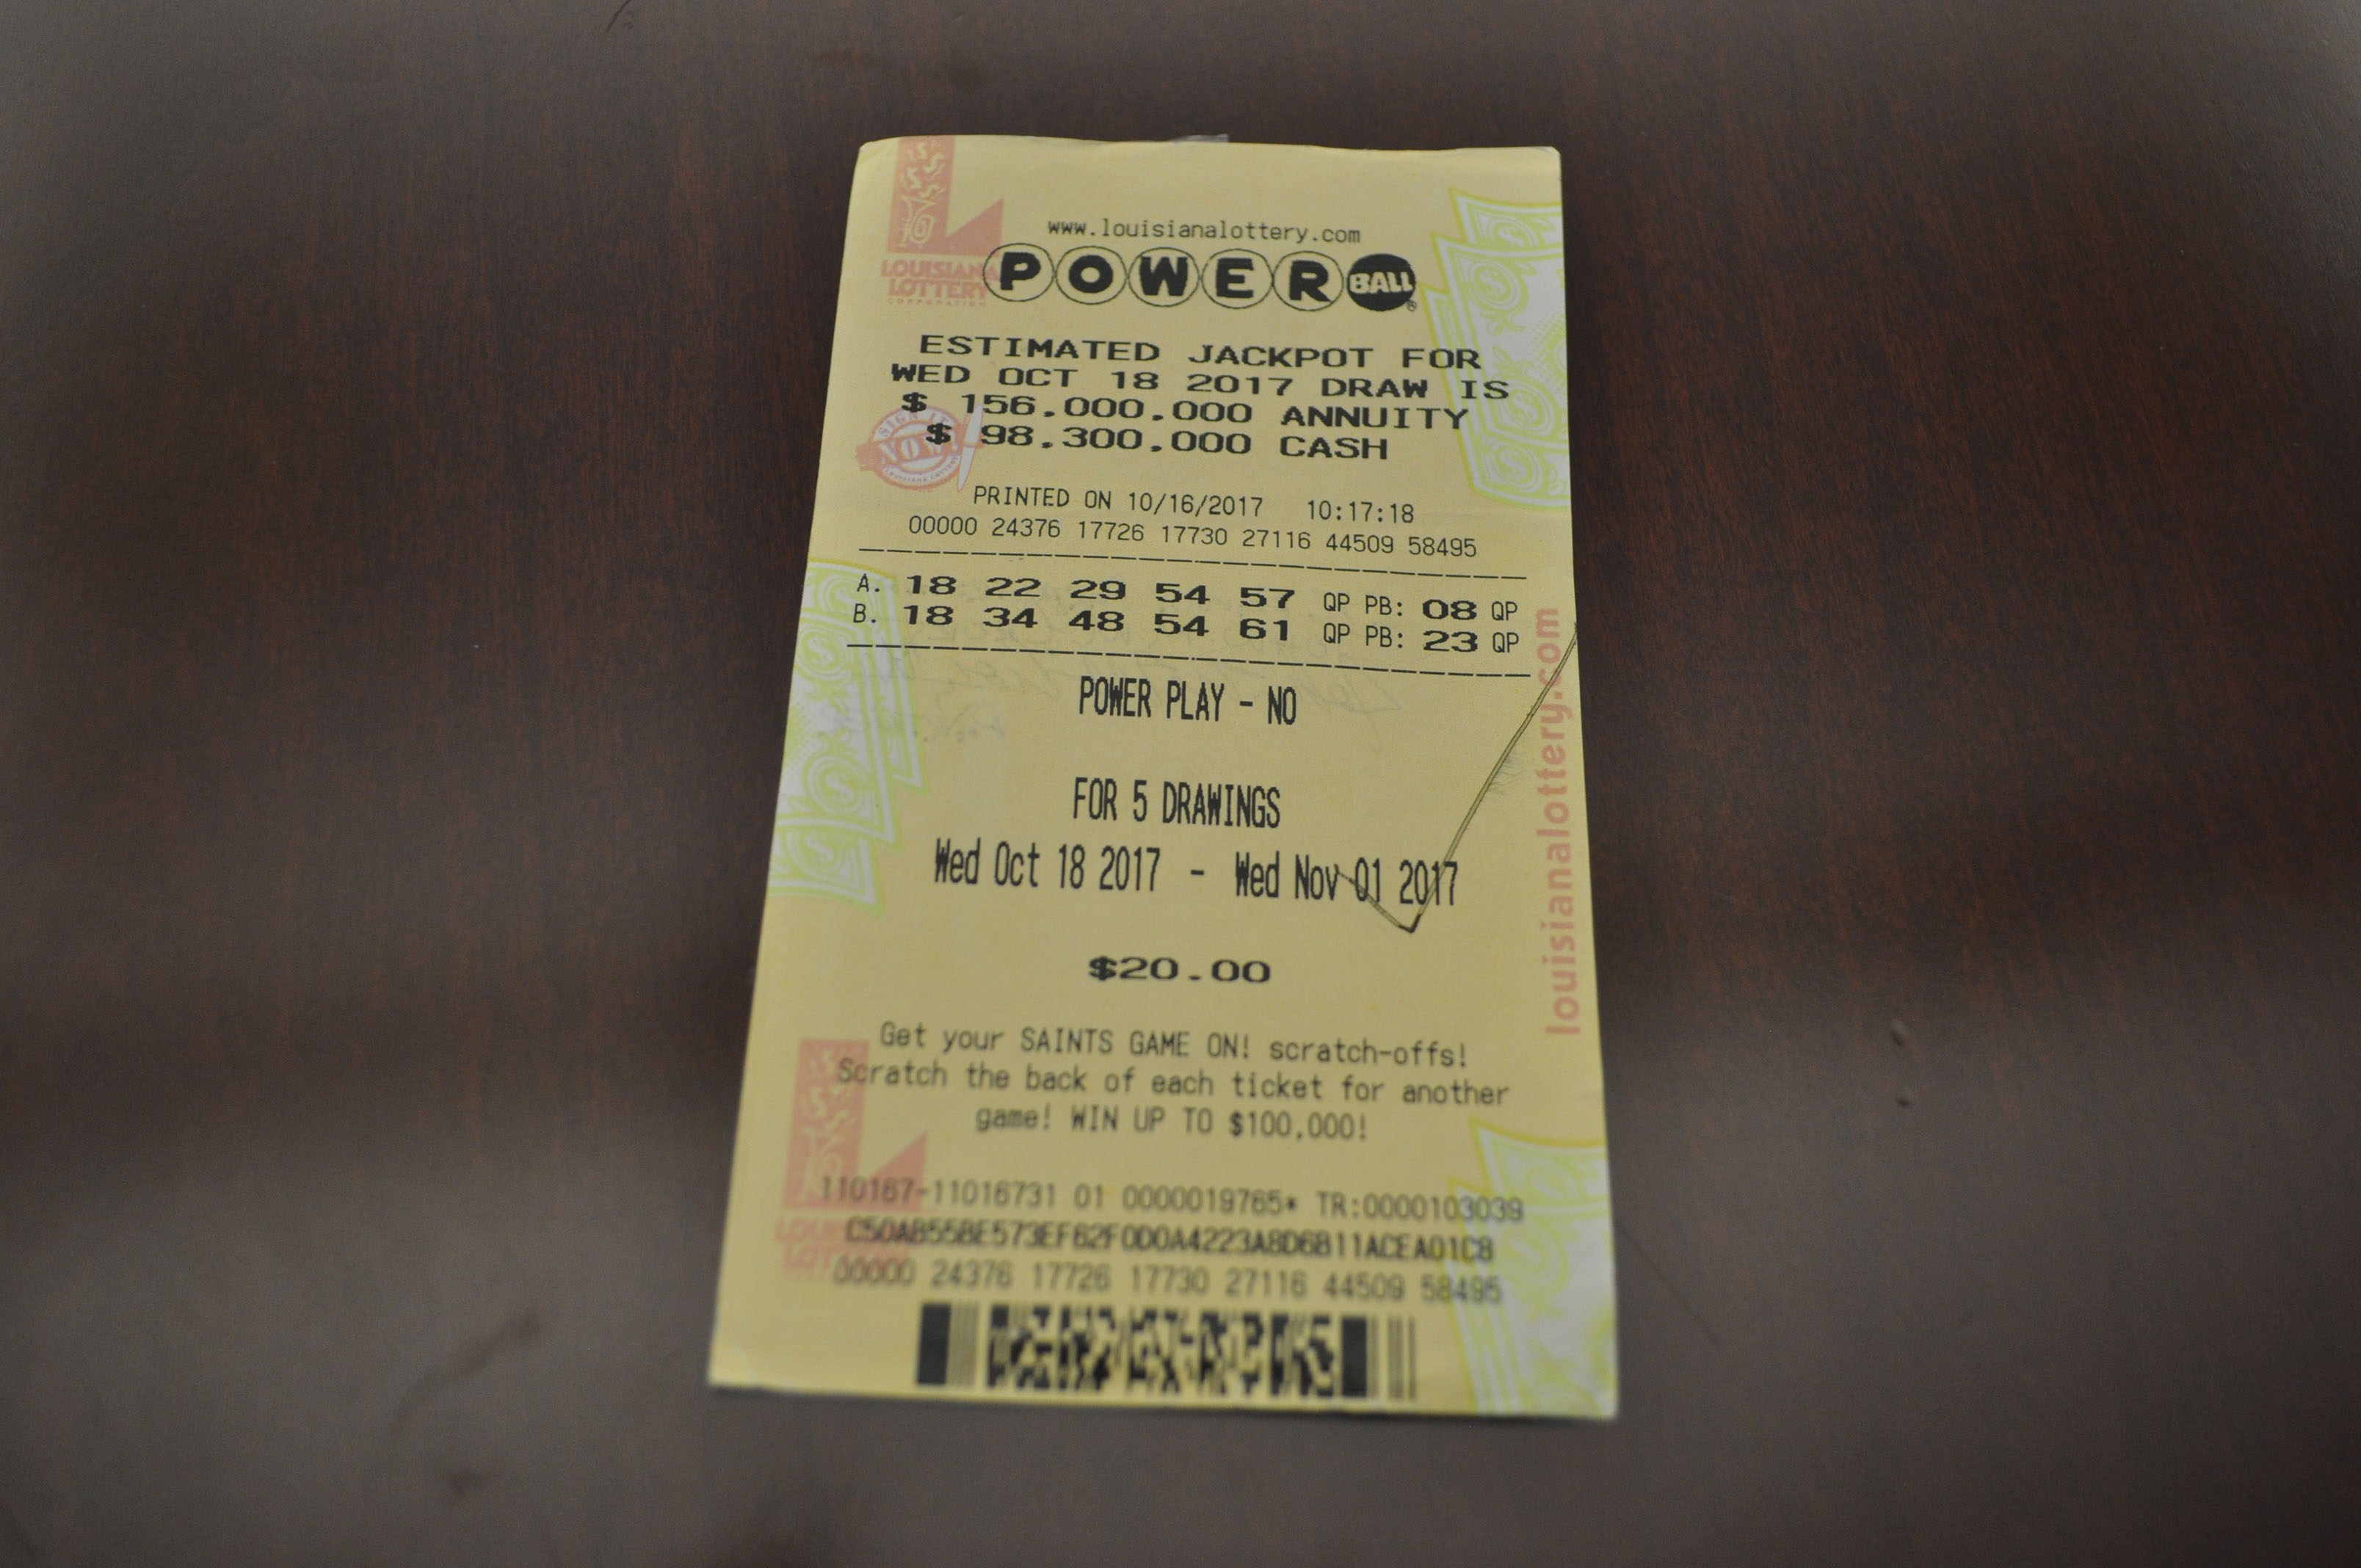 louisianalottery.com powerball numbers photo - 1